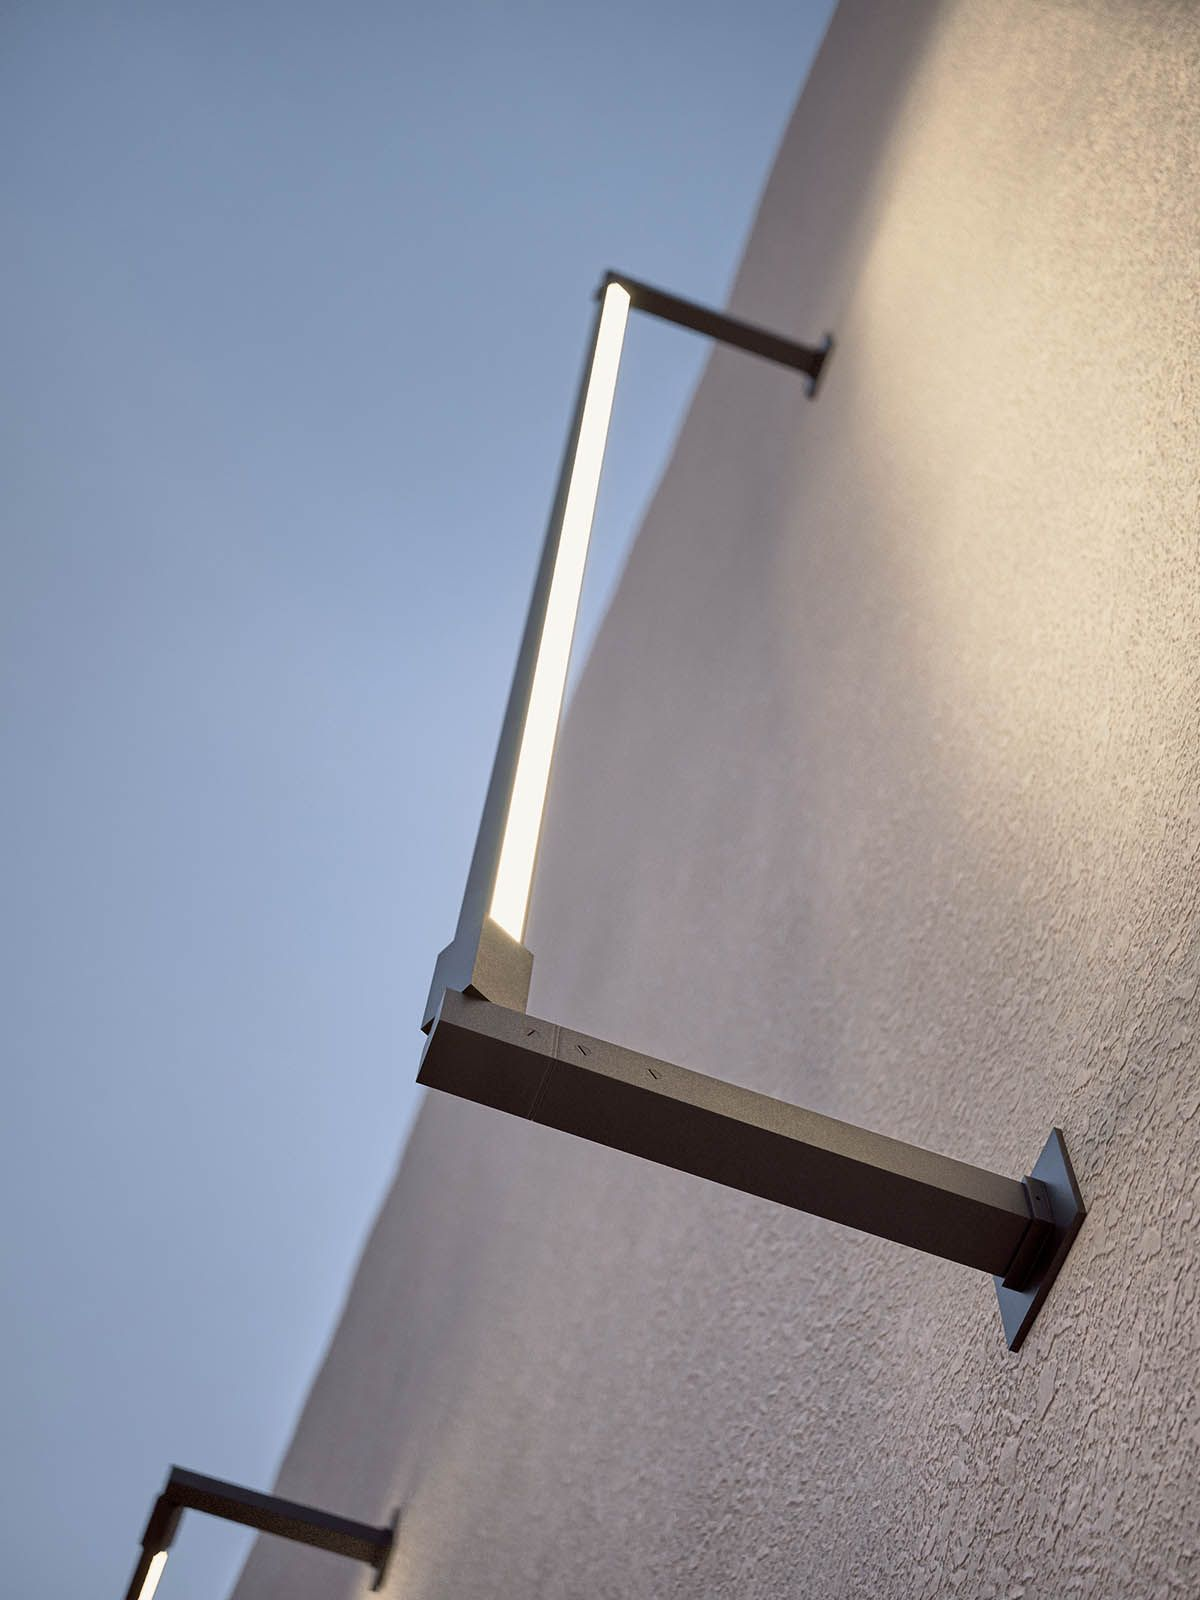 Rail Outdoor Lighting System Commercial Outdoor Lighting Facade Lighting Modern Exterior Lighting